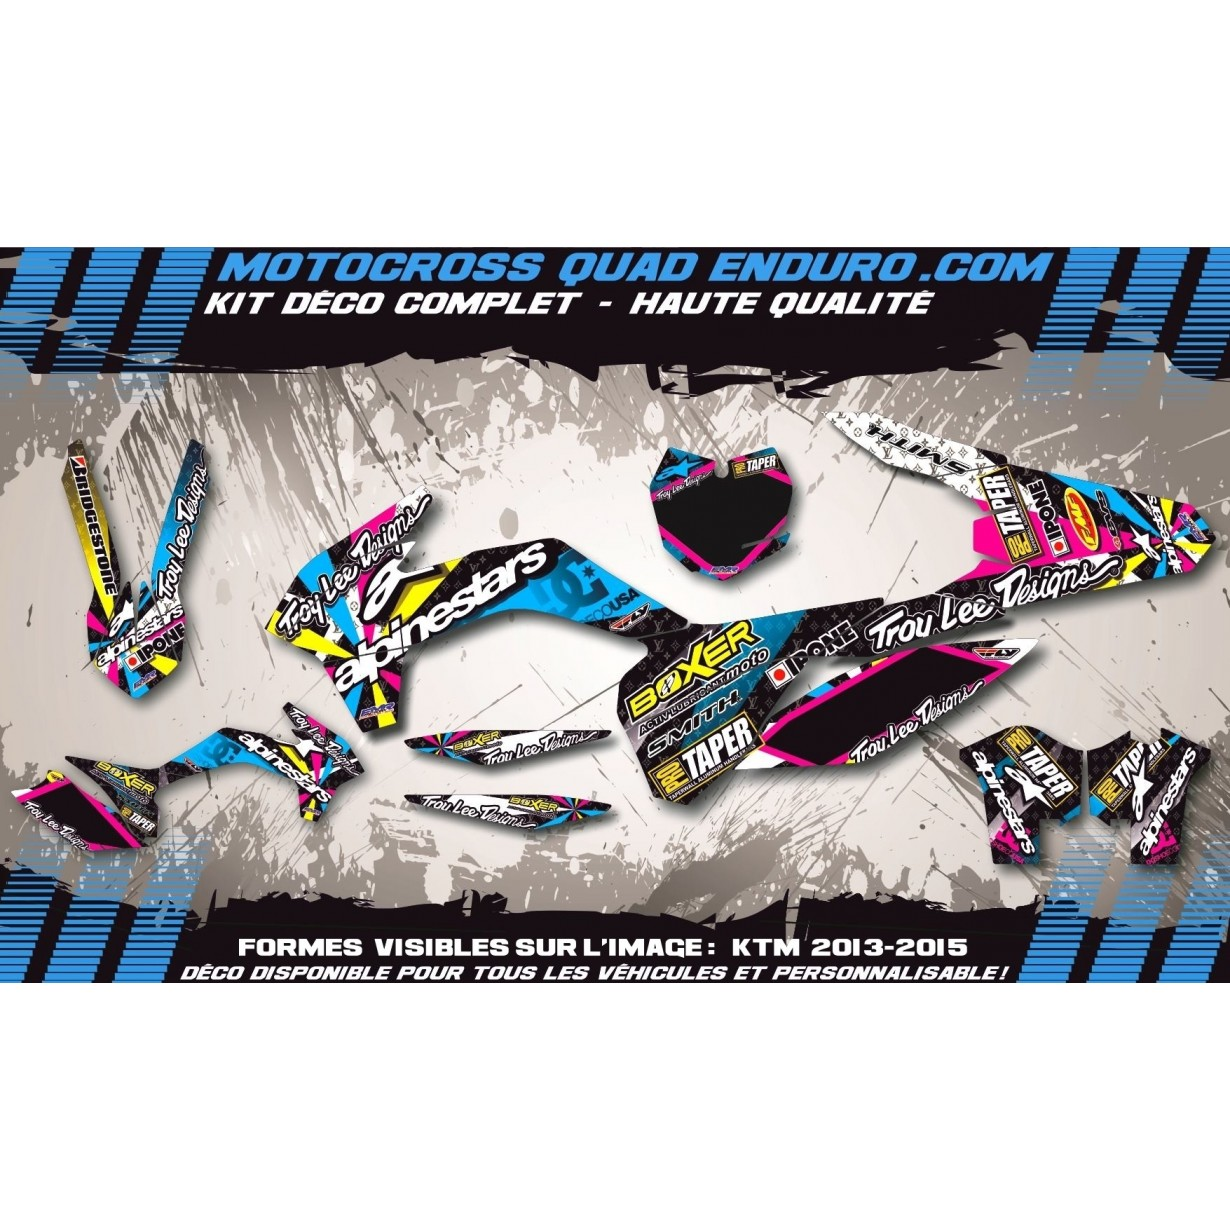 KIT DÉCO Perso TE 13-14 ALPINESTAR MA4A